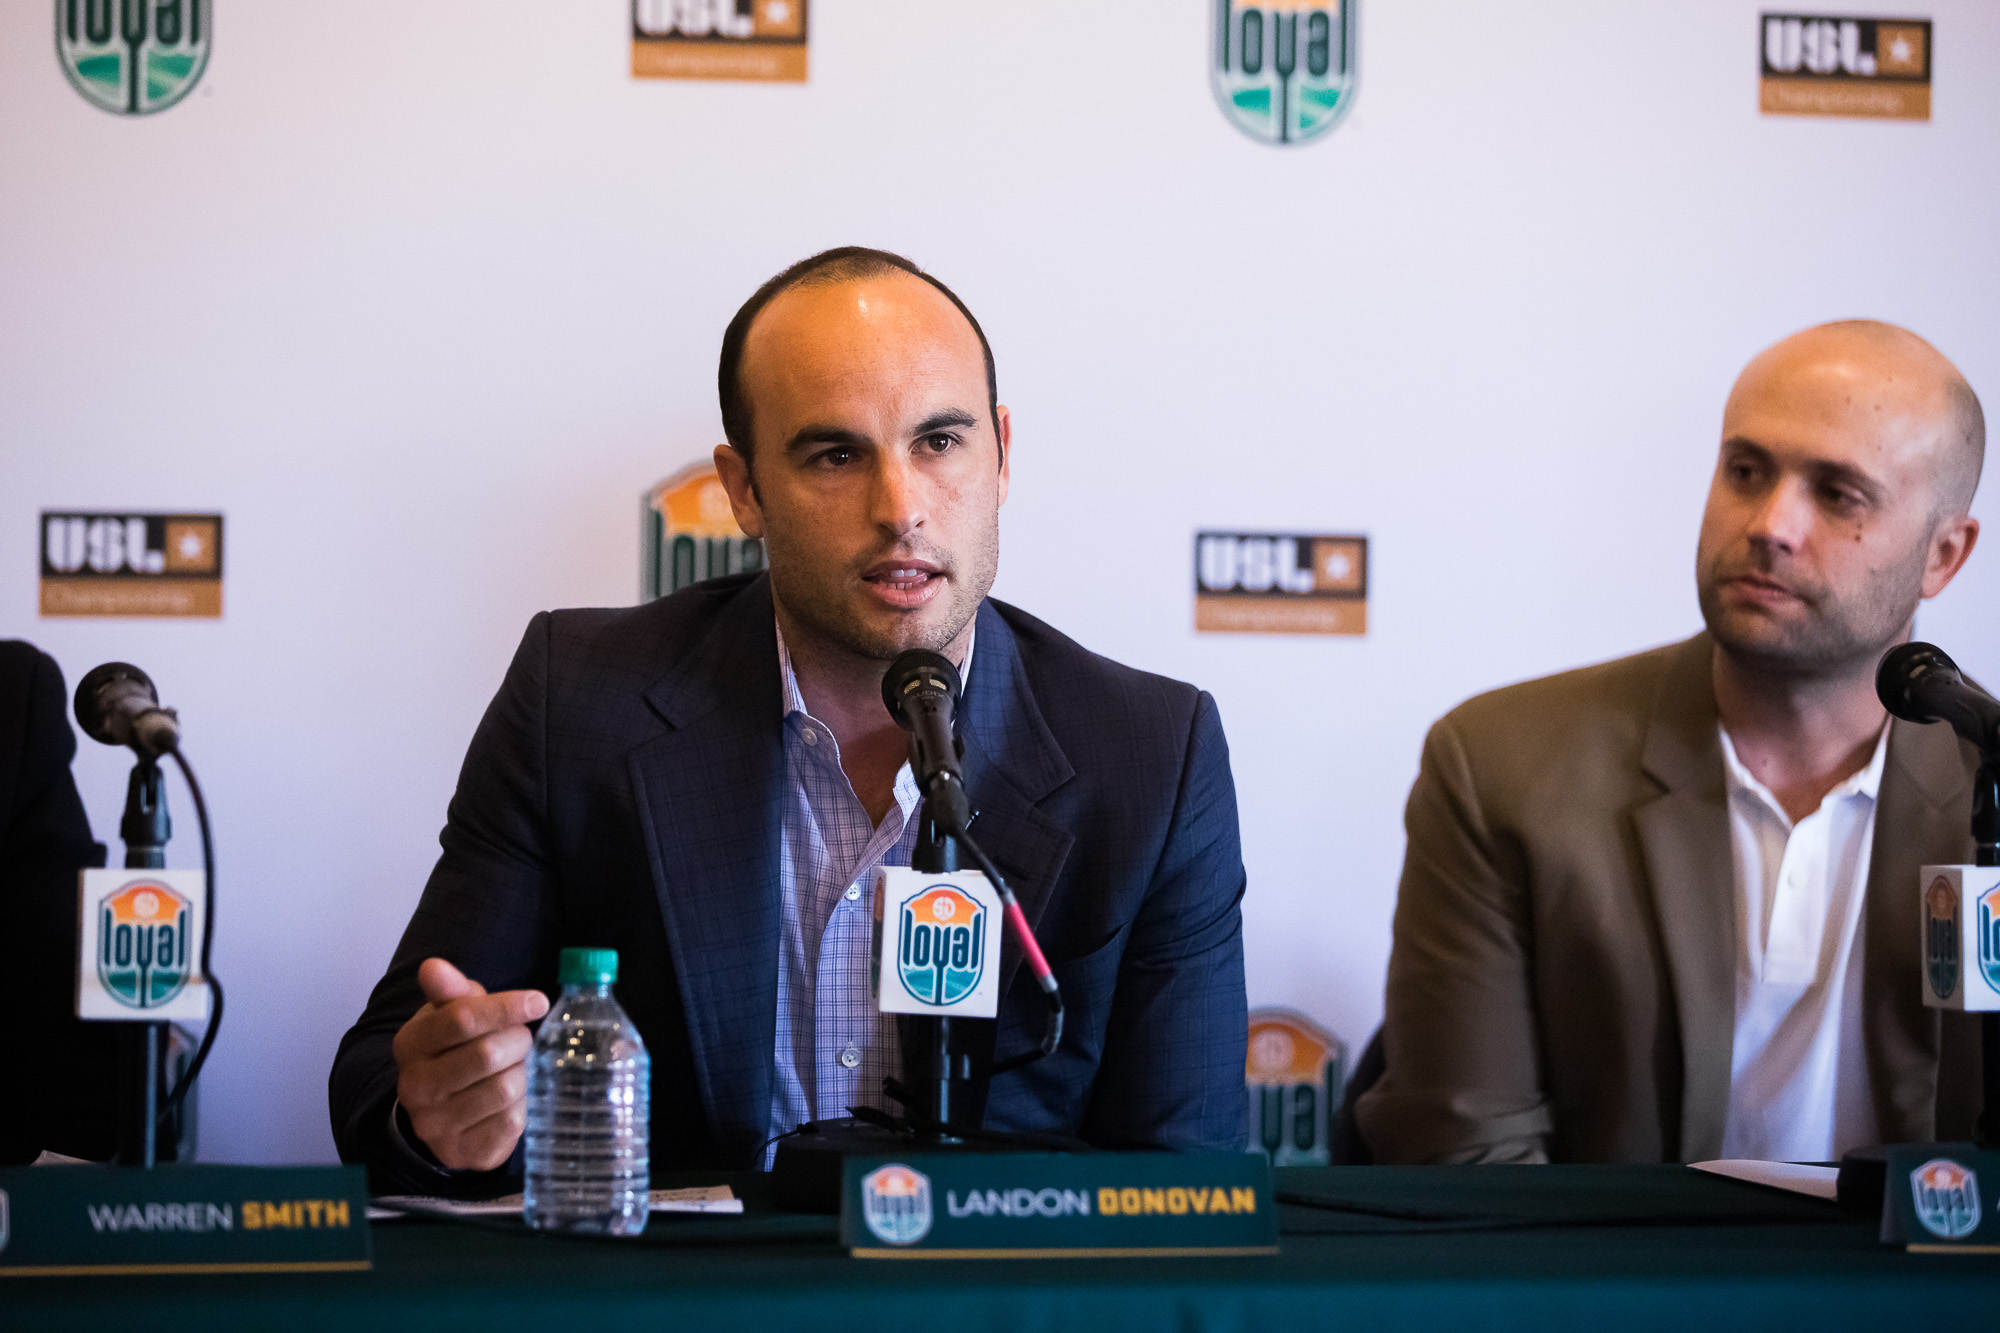 """Landon Donovan: Getting Cut from the 2014 roster was """"much more valuable than going to a World Cup."""""""